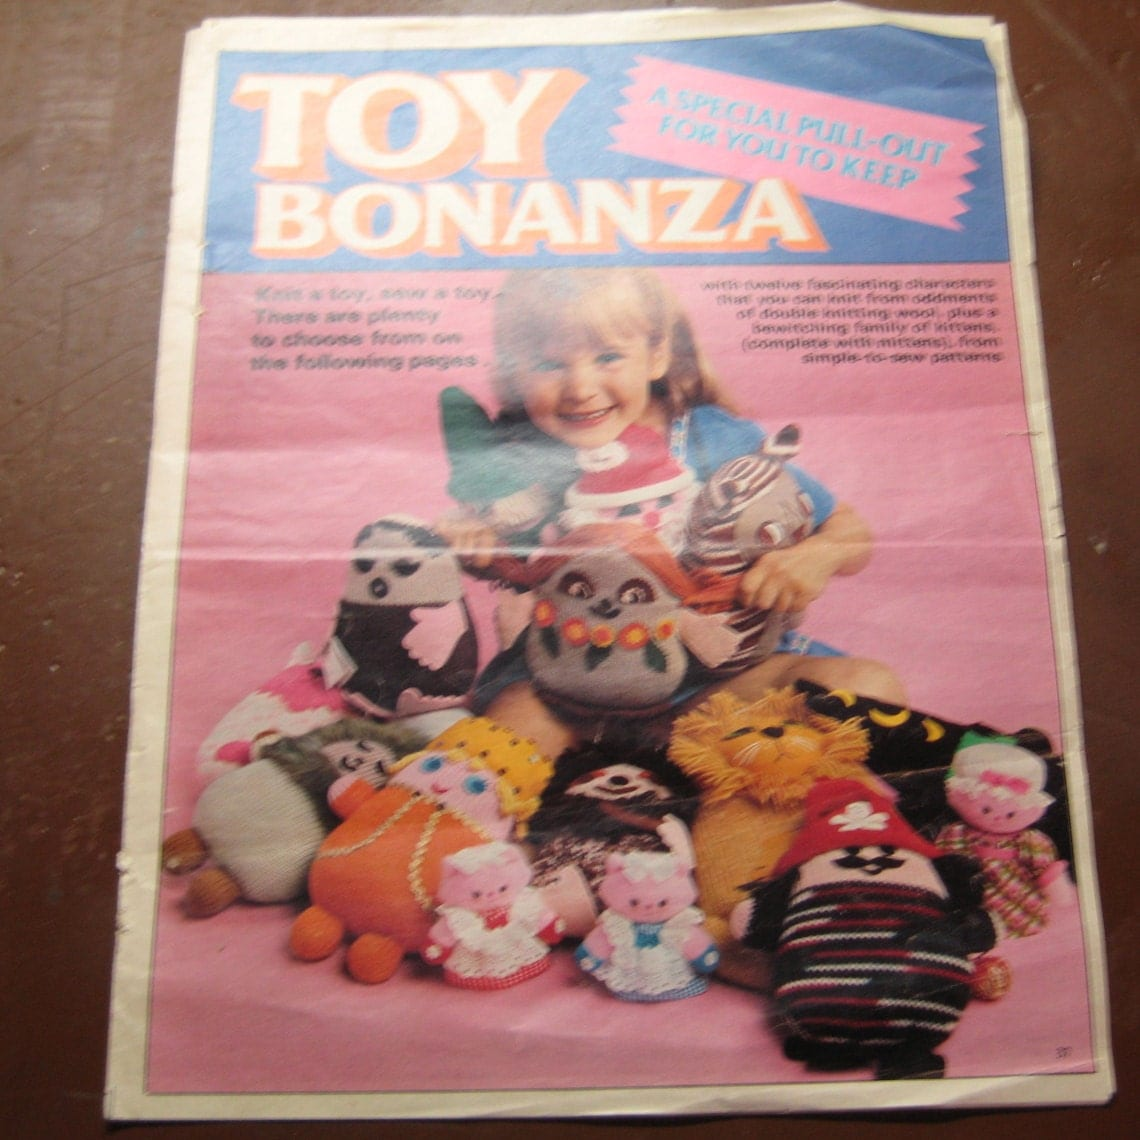 Vintage Knitting Patterns Toys : Vintage Knitting Patterns Toy Bonanza by hmbstudiossupplies